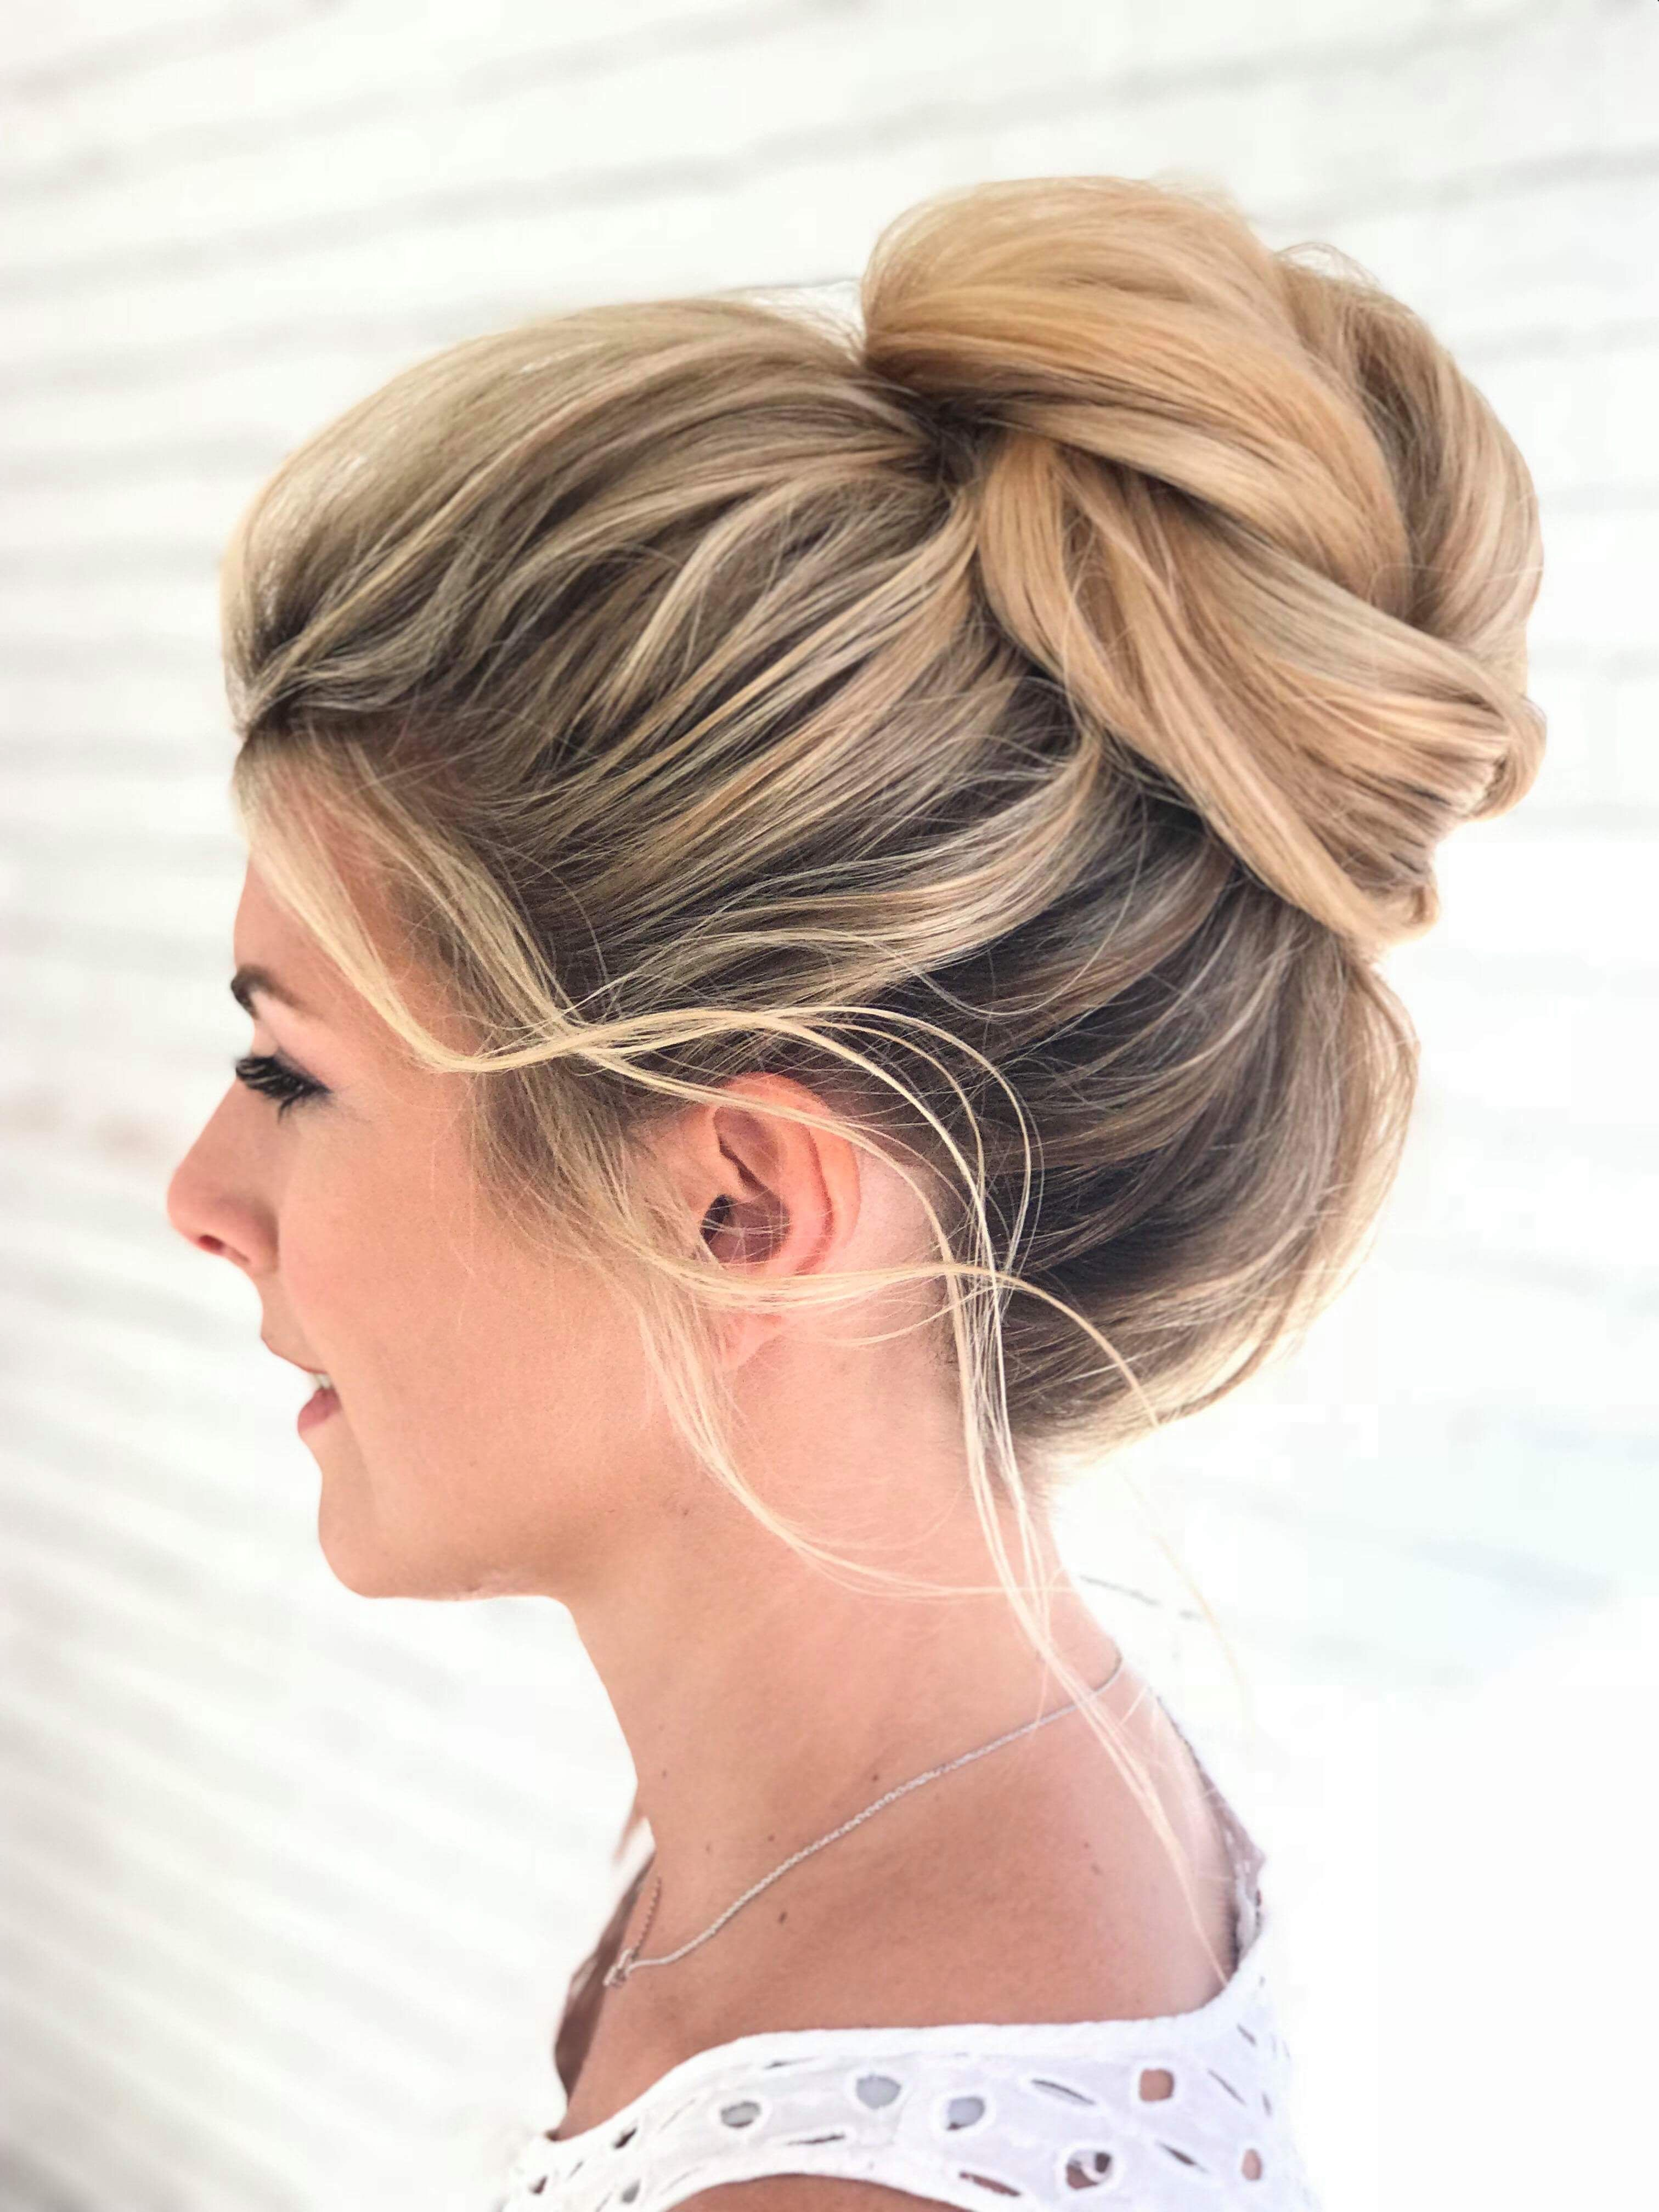 Messy High Bun On Blonde Highlighted Hair Gorgeous For A Wedding Updo Bridesmaid Hair Side High Bun Hairstyles Bridesmaid Hair Messy